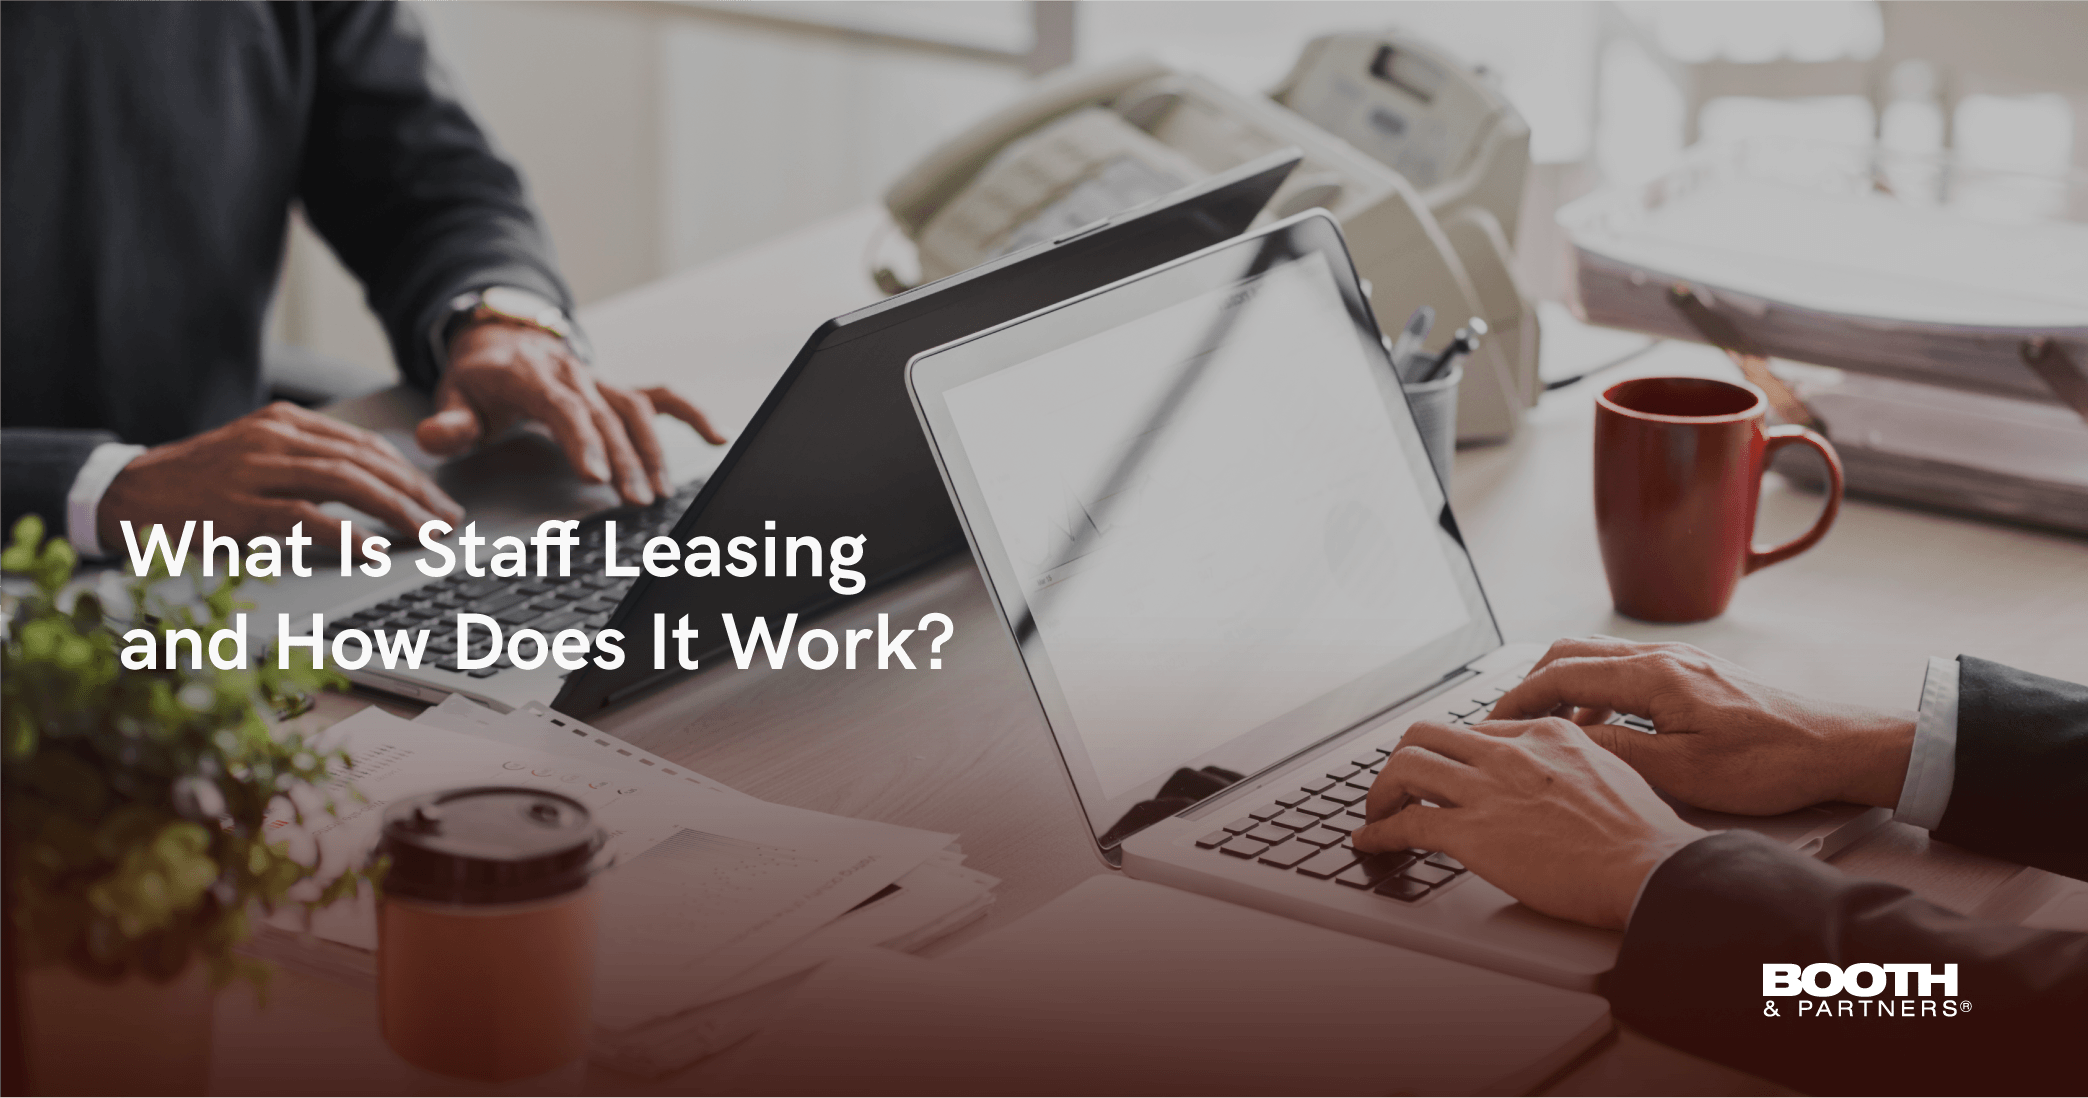 What is staff leasing and how does it work